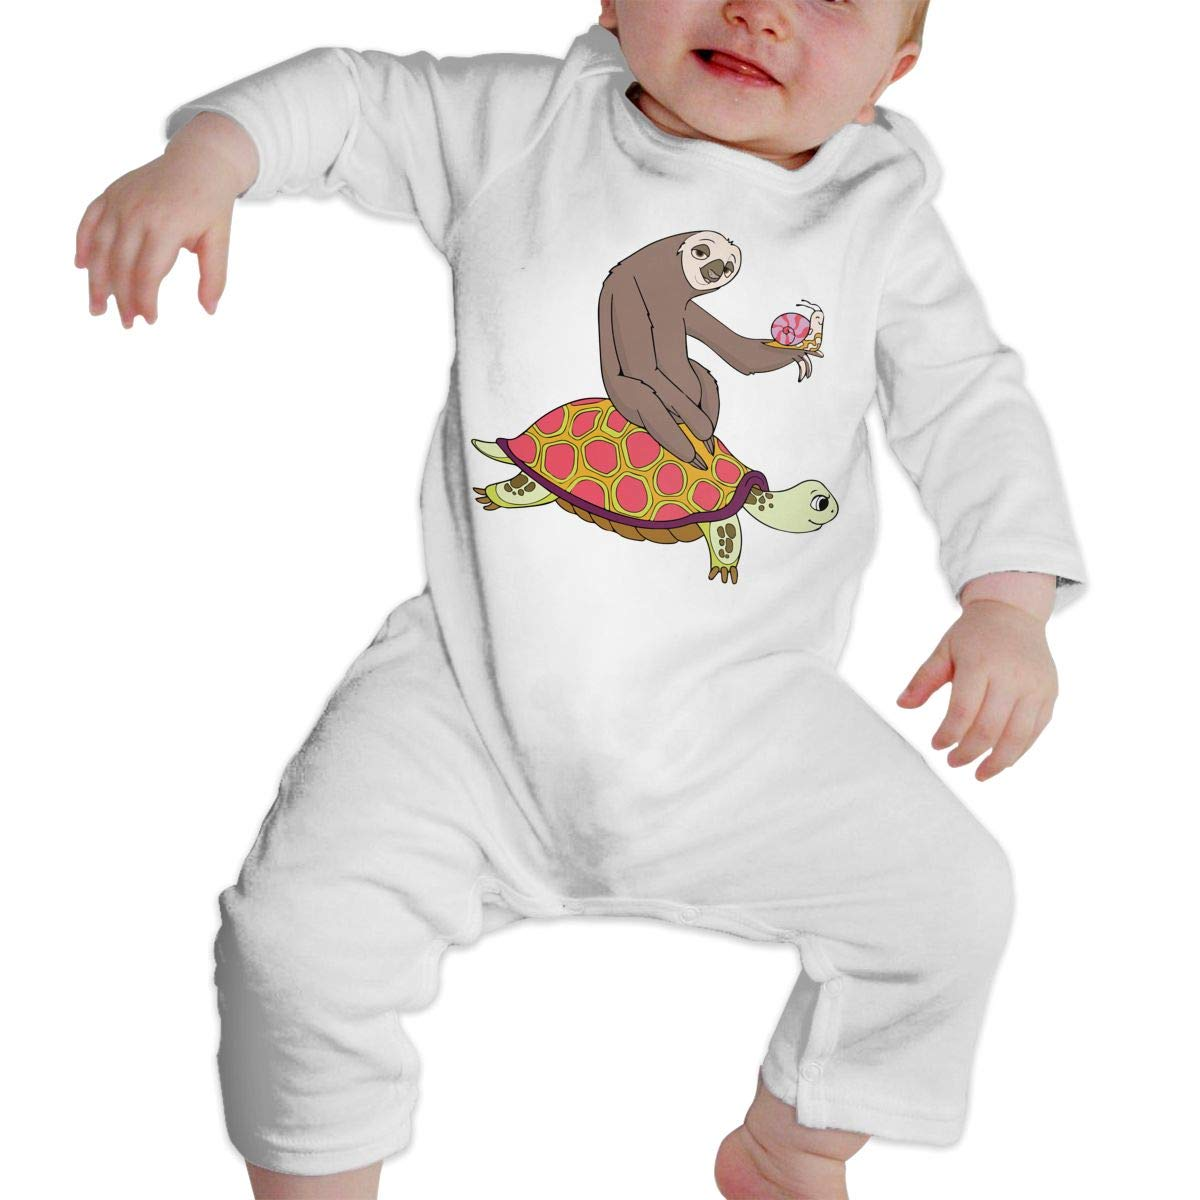 Turtle and Snail Jumpsuit Bodysuit Clothes 100/% Organic Cotton Long Sleeve One-Piece Coverall AucCen Babys Sloth